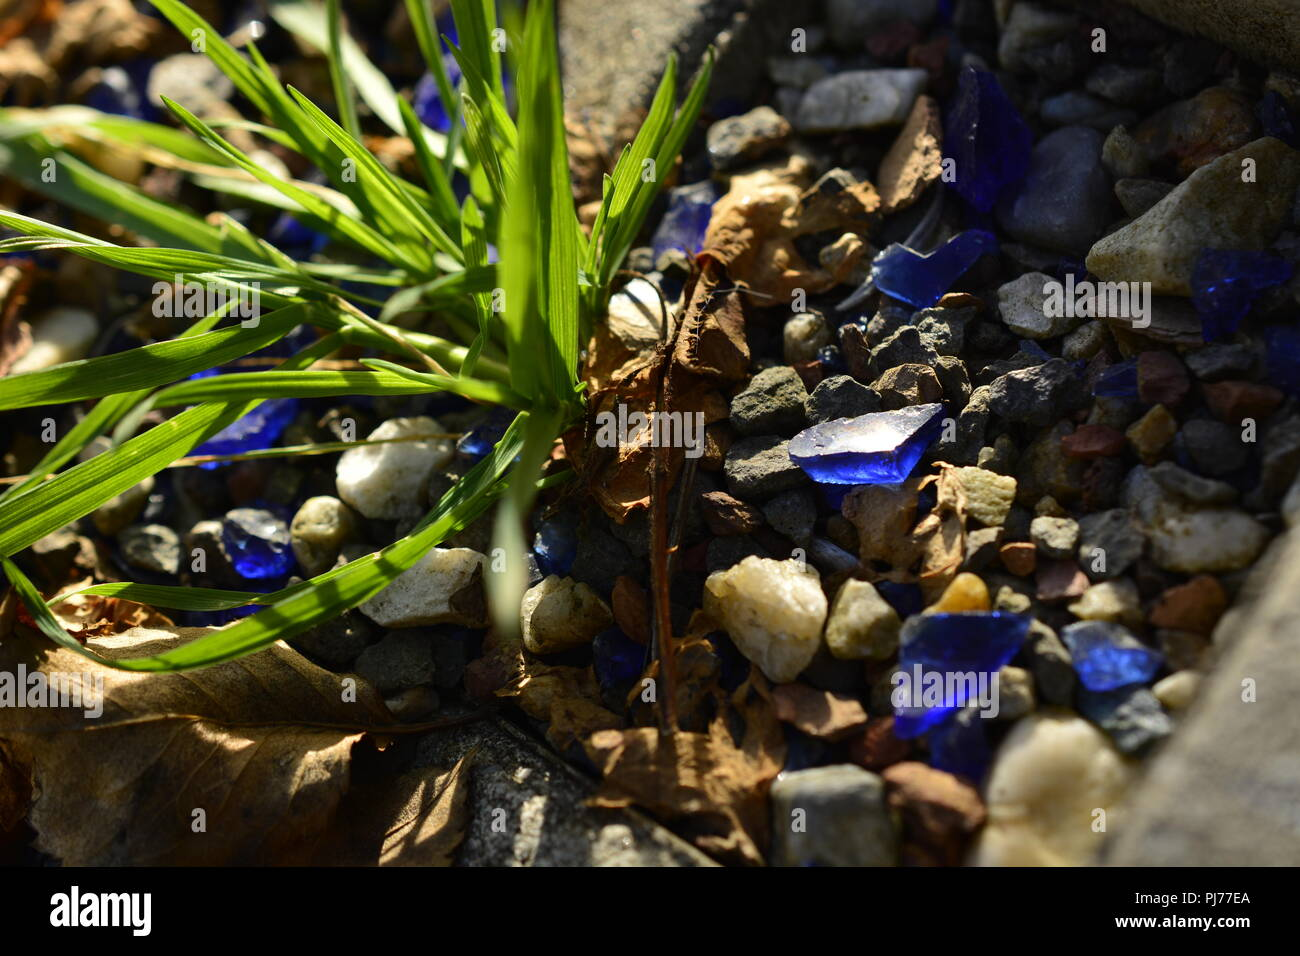 pebbles and glass stones in different colors decorating a grass ...